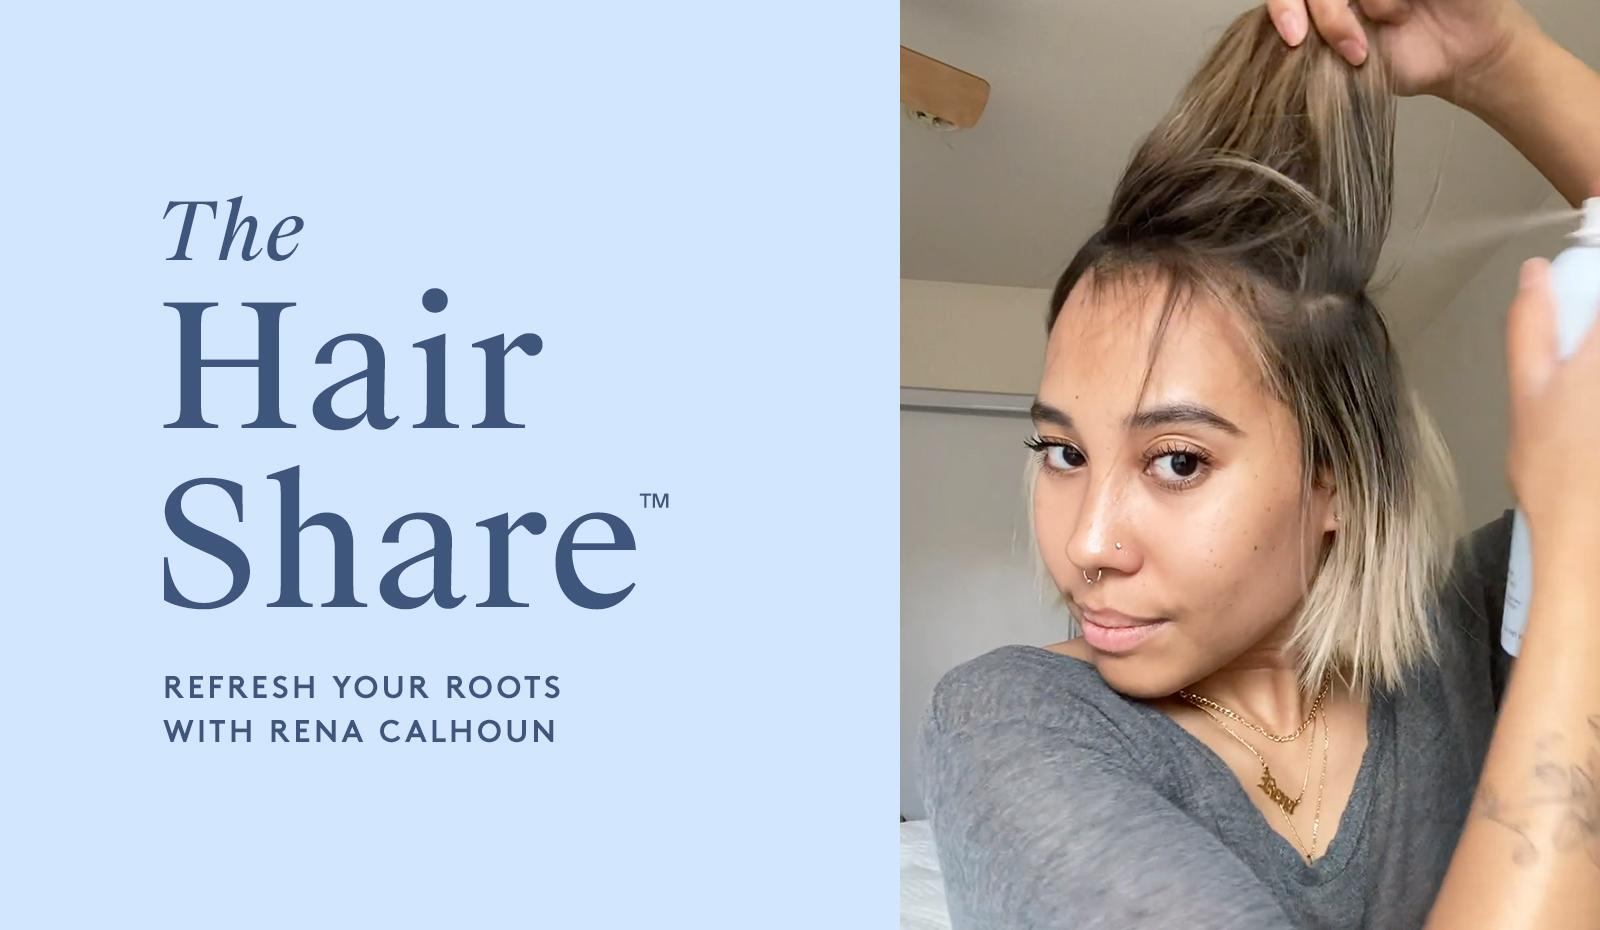 The Hair Share®: Refresh Your Roots with Rena Calhoun